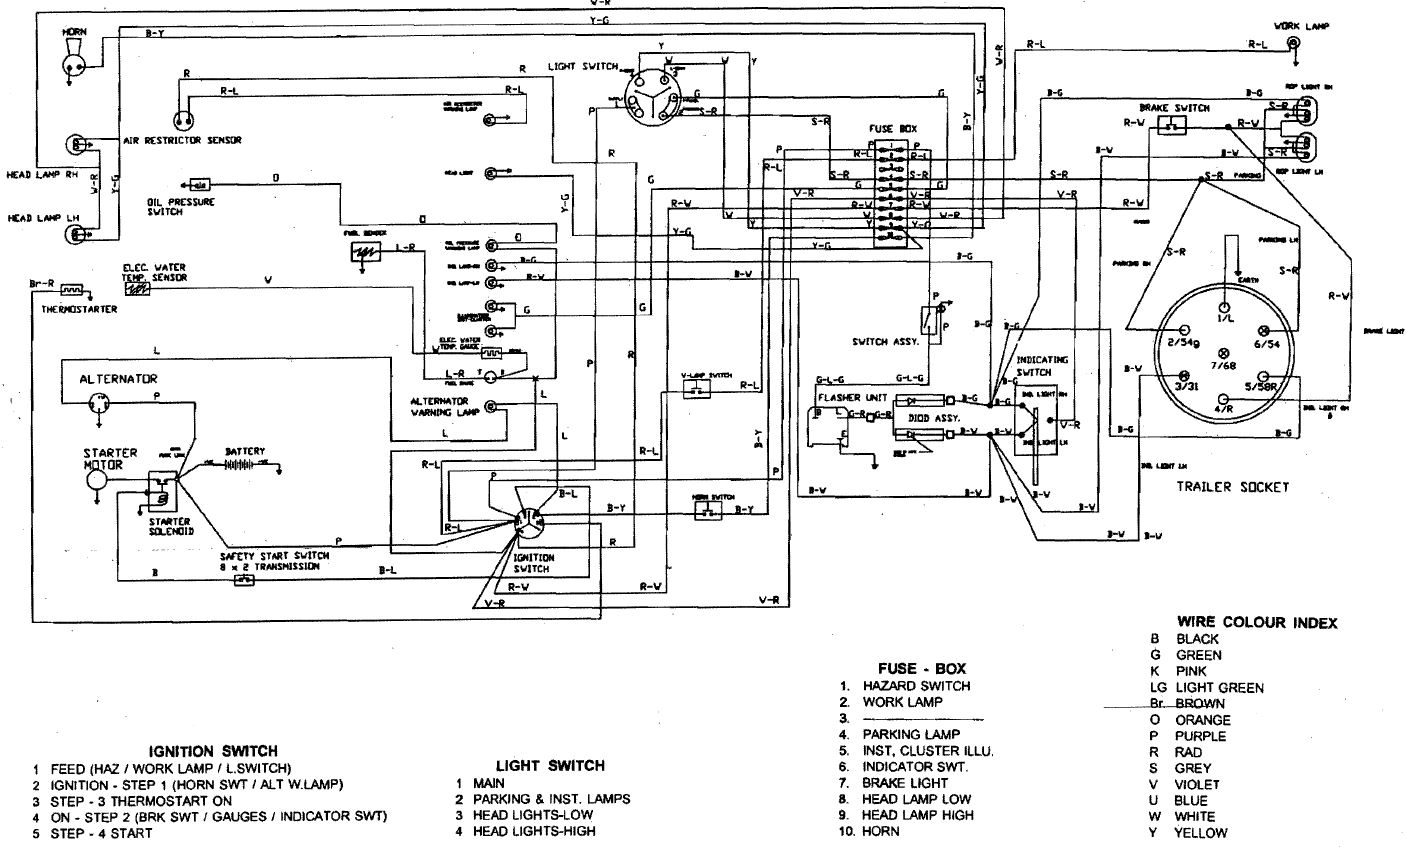 20158463319_b82d524c3d_o ignition switch wiring diagram new holland l555 wiring diagram at et-consult.org